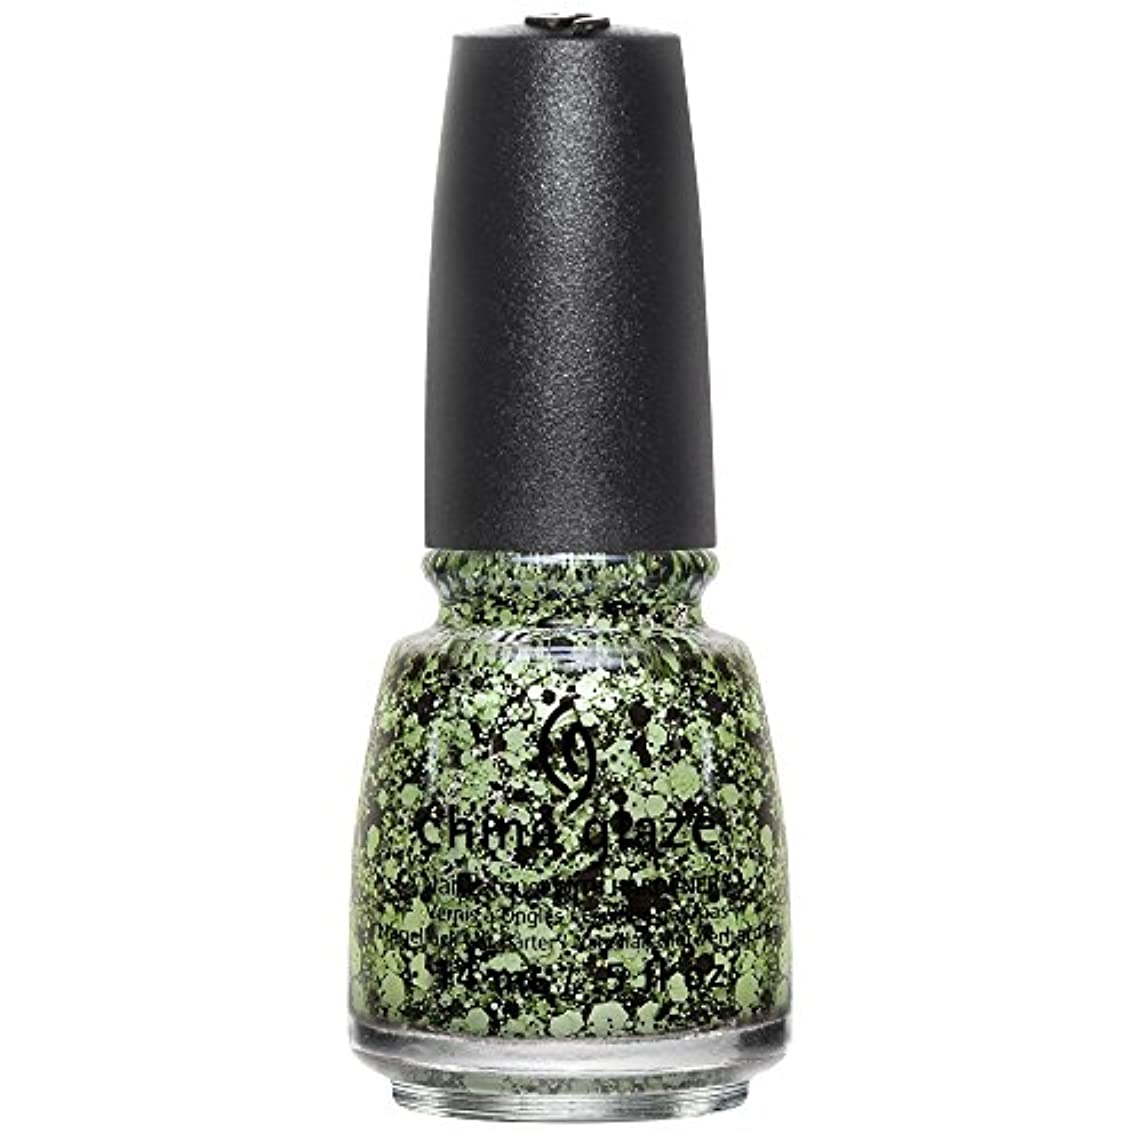 CHINA GLAZE Nail Lacquer - Ghouls Night Out Collection - Somethings Brewing (並行輸入品)